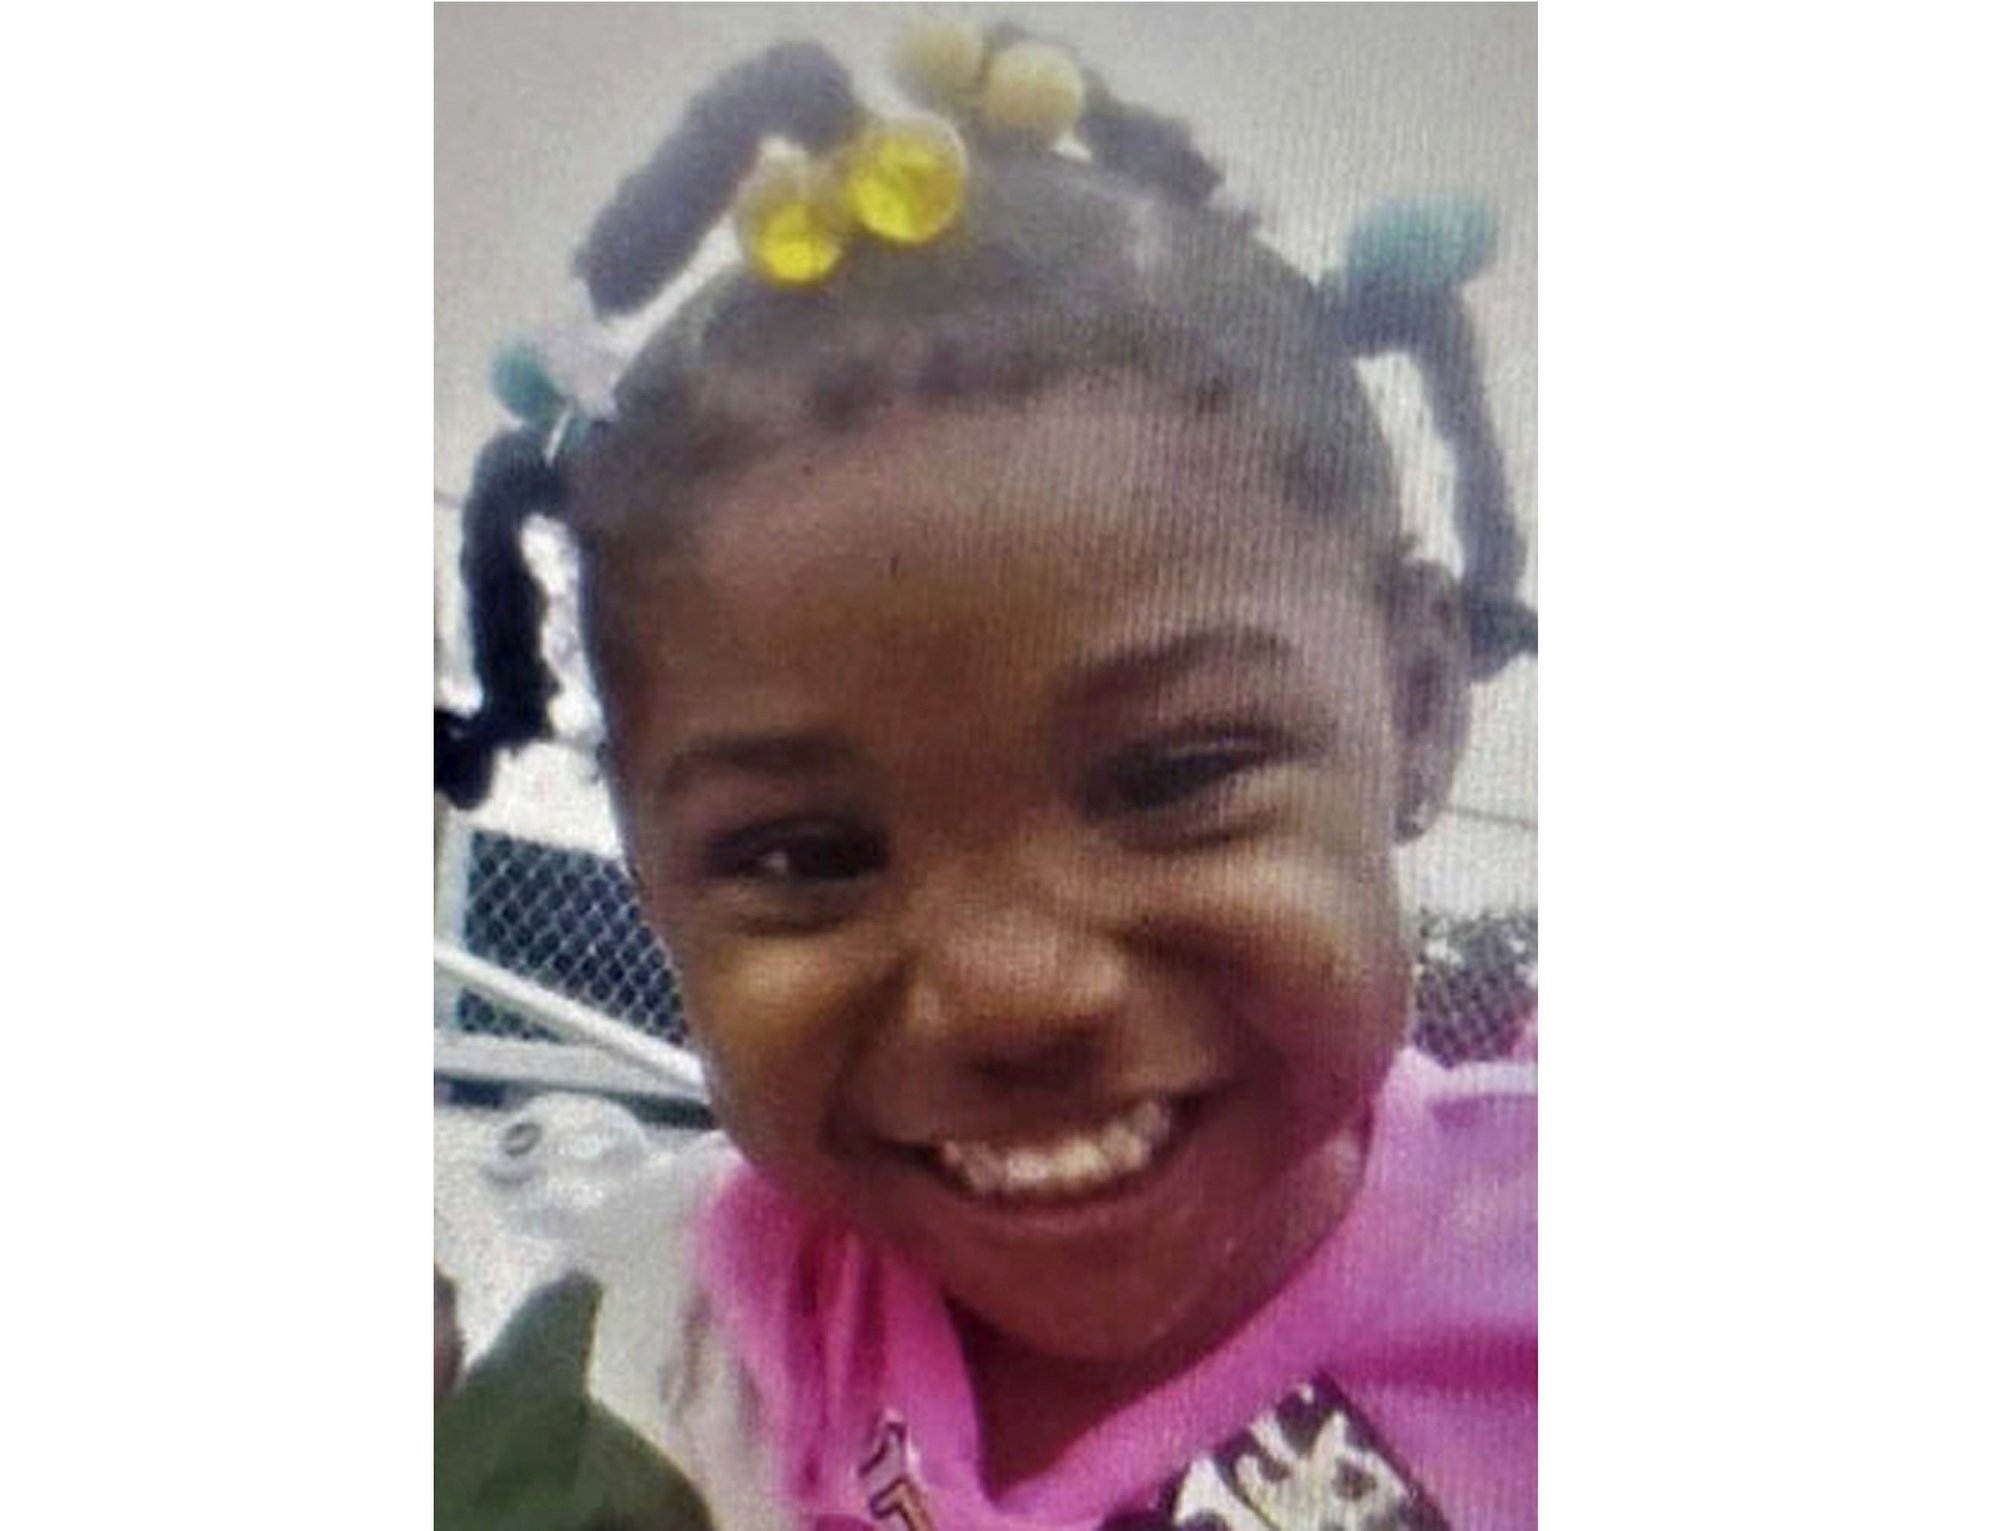 Police search of apartments fails to locate missing girl